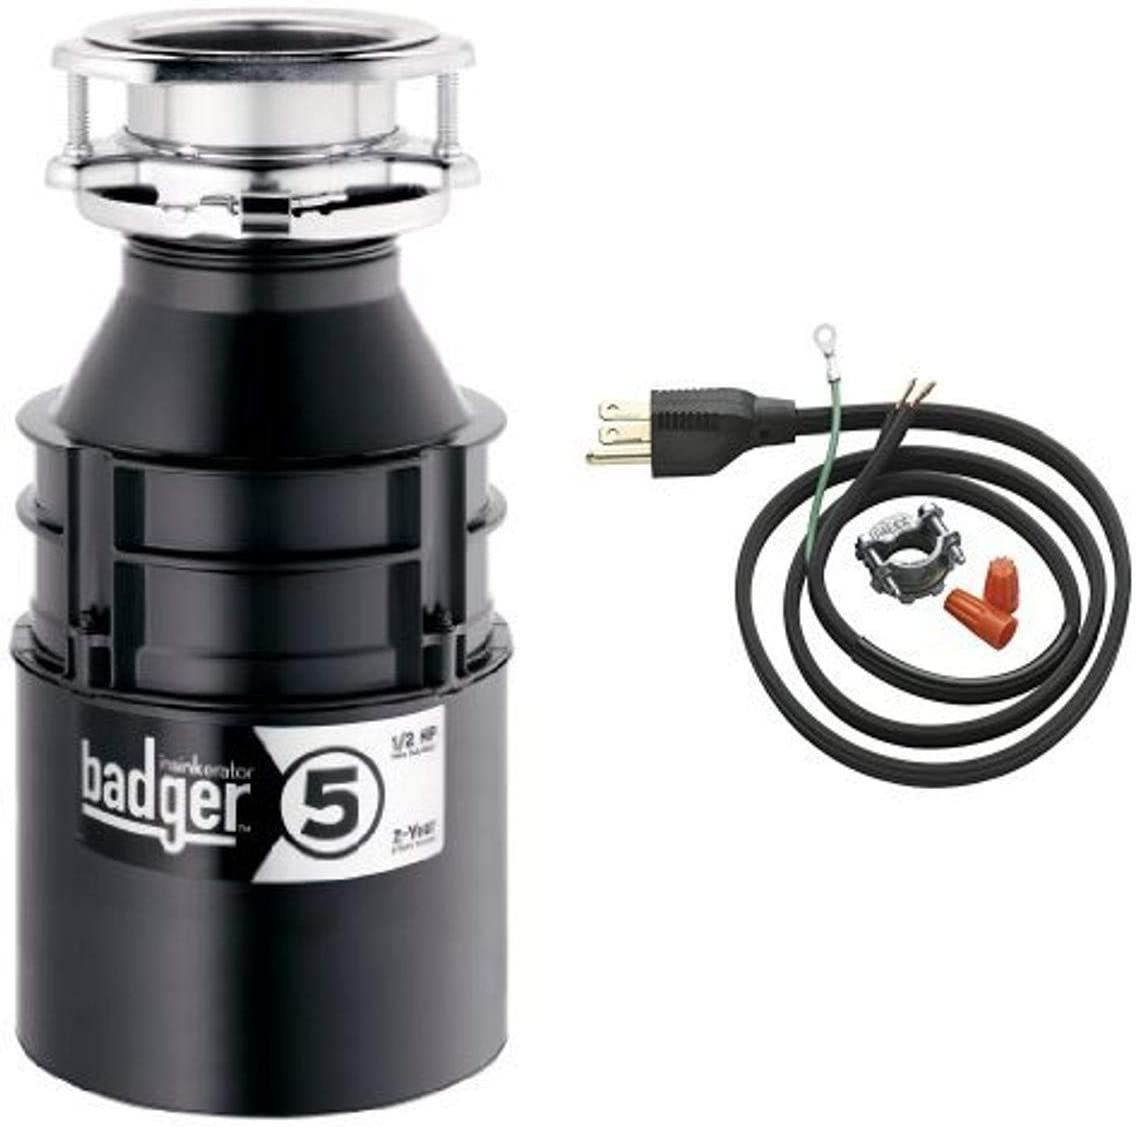 InSinkErator Badger 5 1 2 HP Cord discount Disposer Power Max 80% OFF and Waste Food